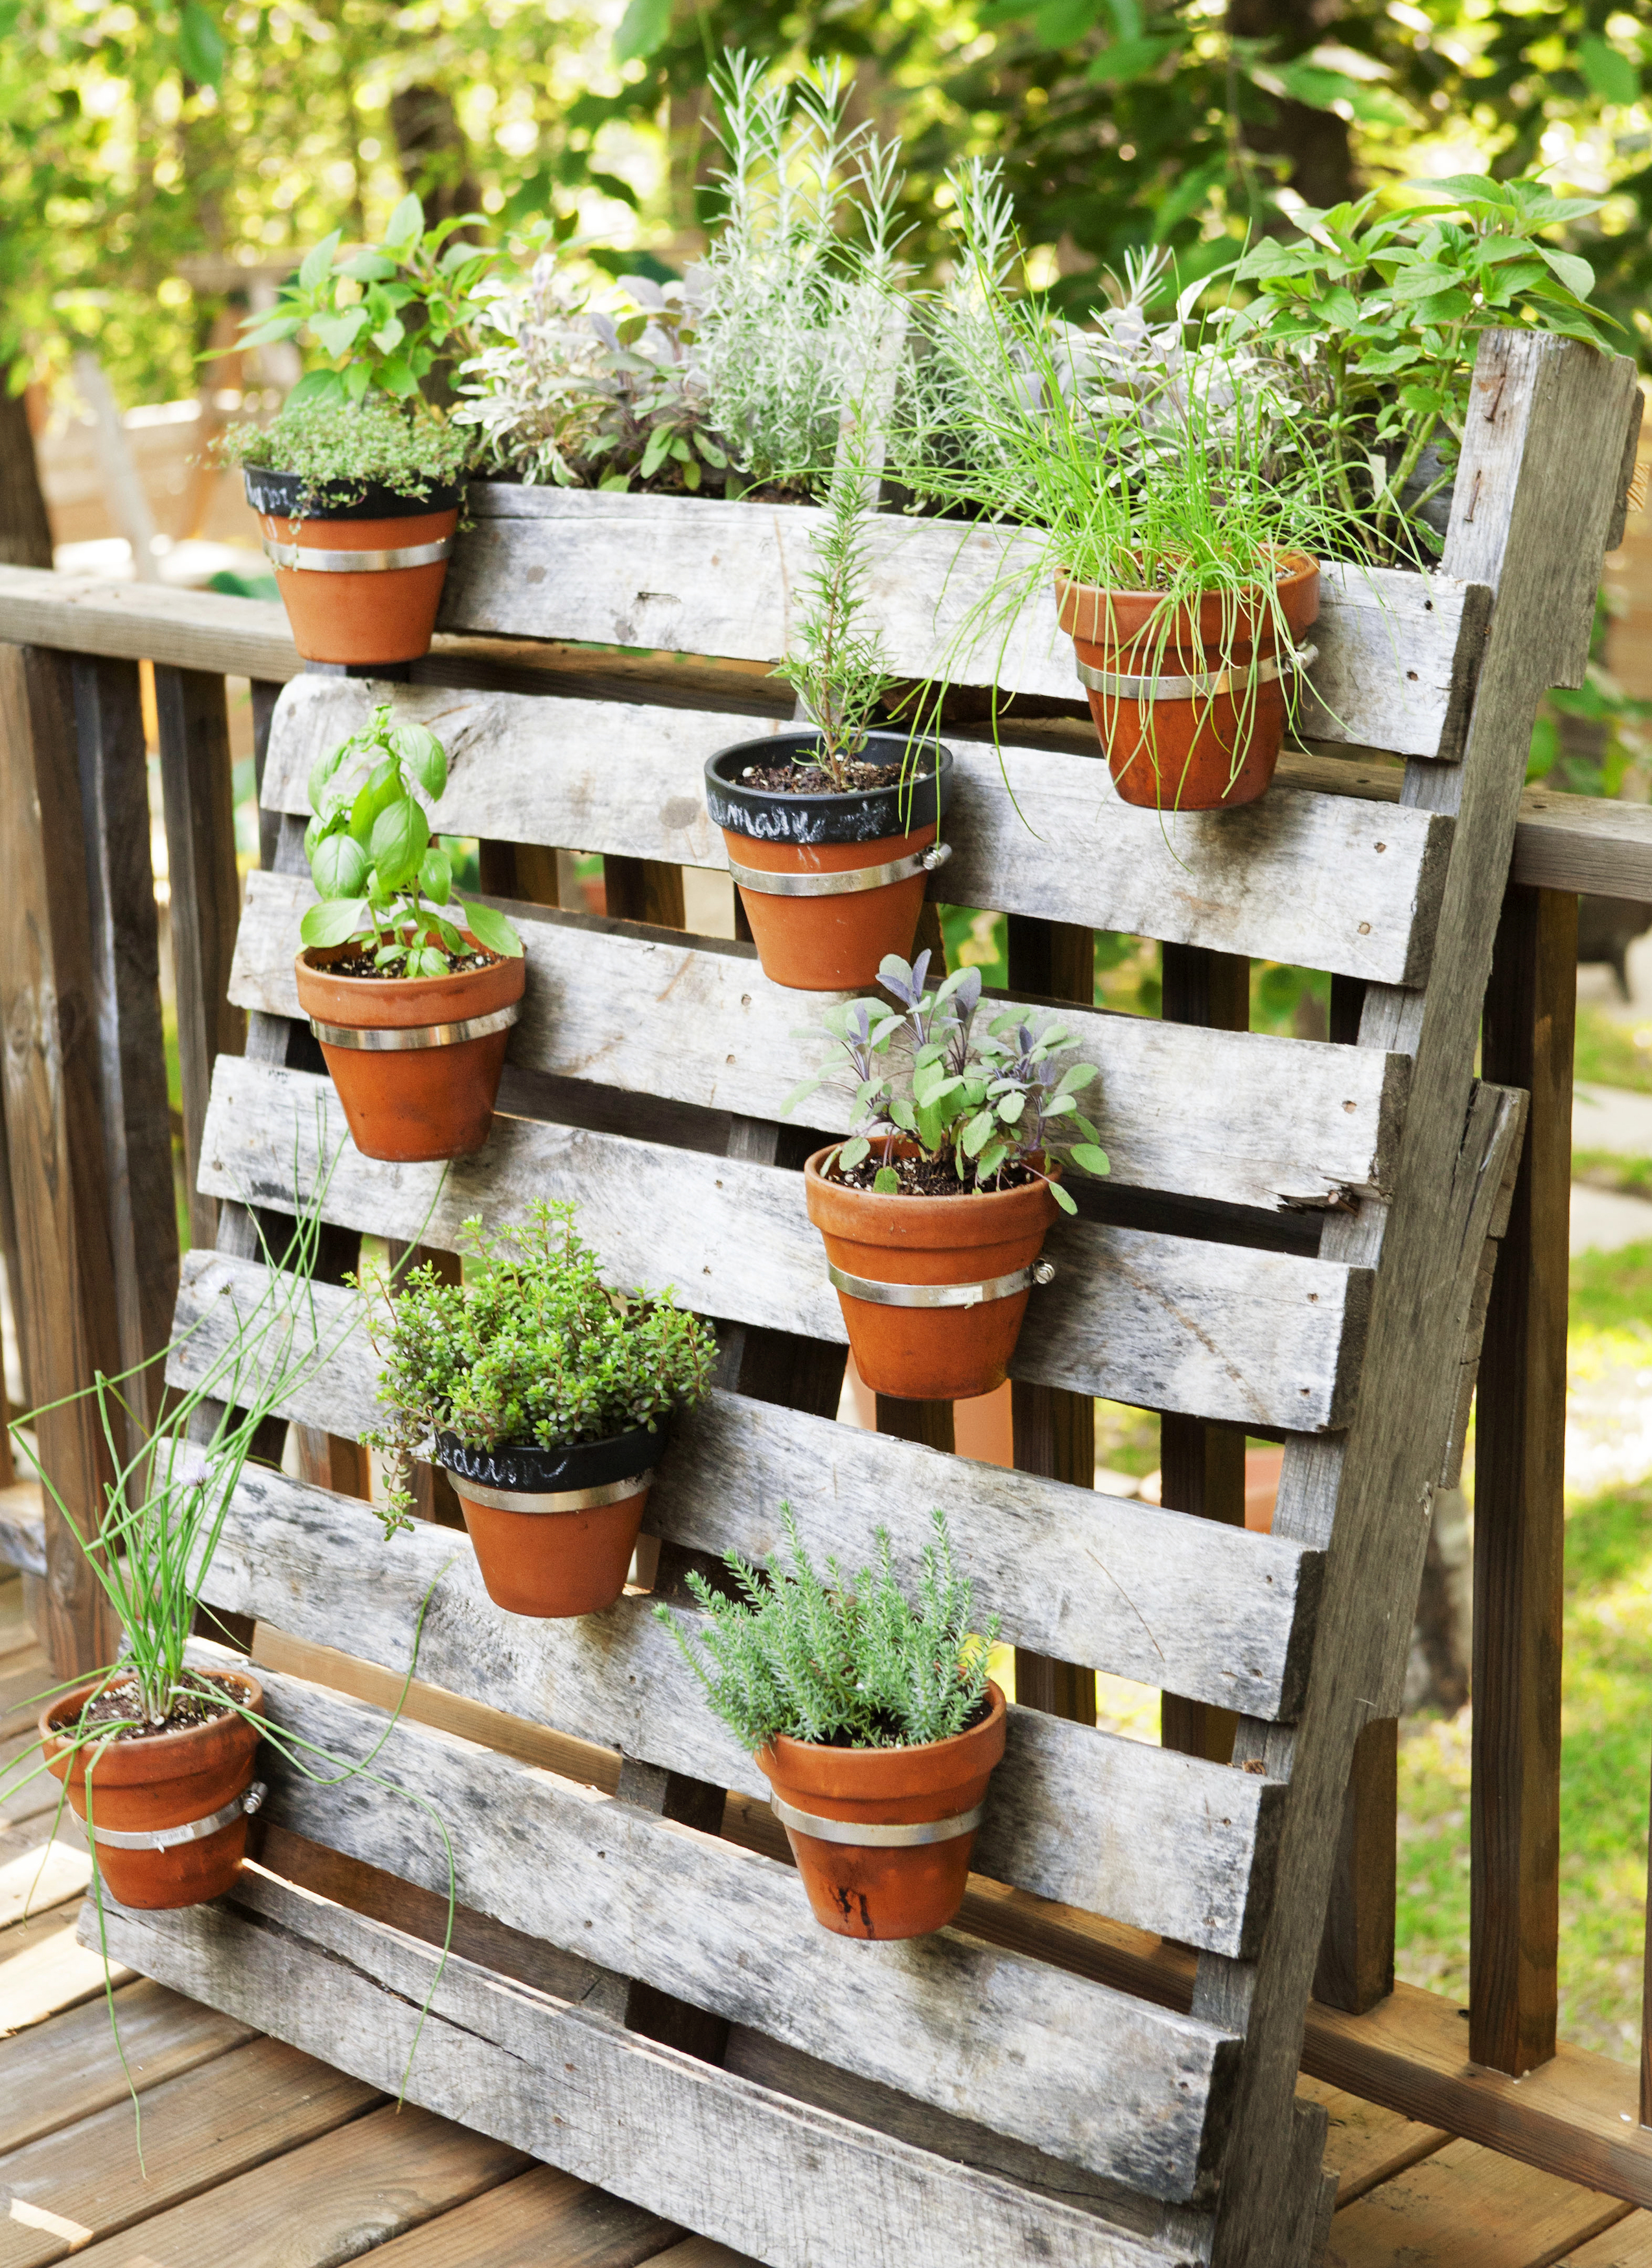 Container Garden Design 13 container gardening ideas - potted plant ideas we love